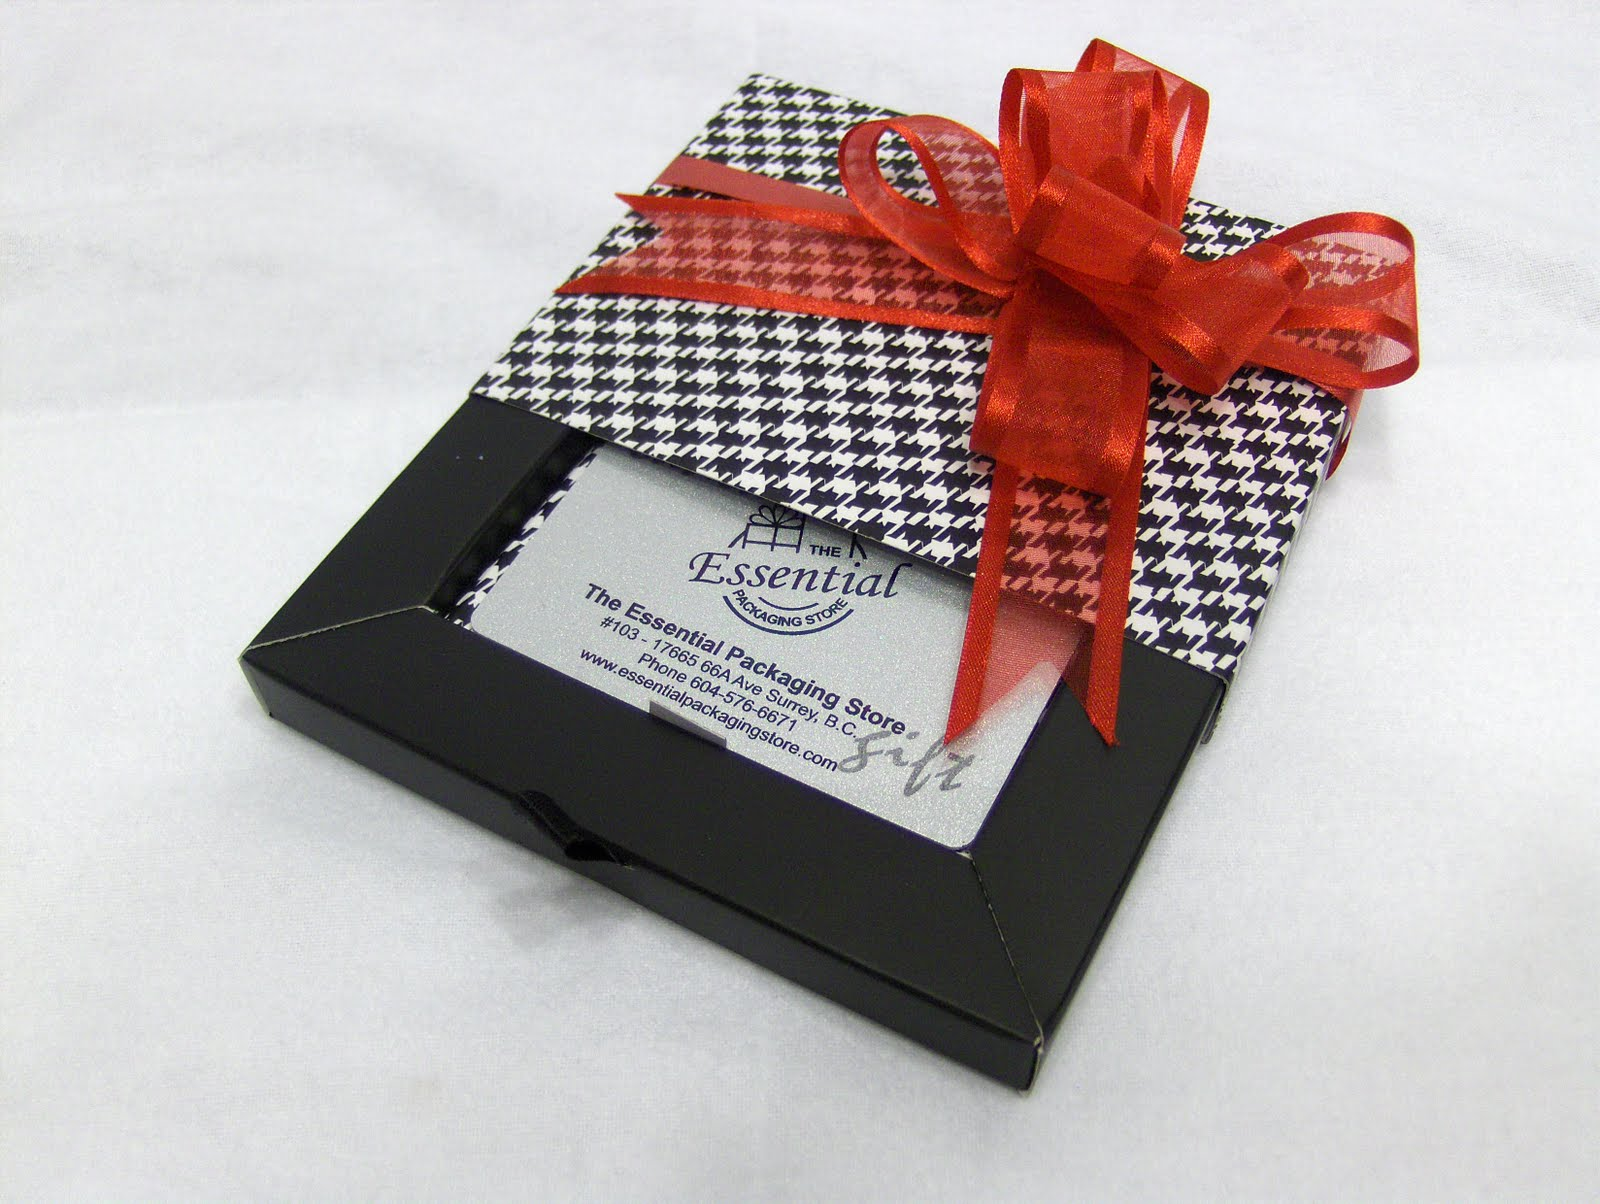 The Essential Packaging Store Blog: Holiday Wrapping - Gift Card ...